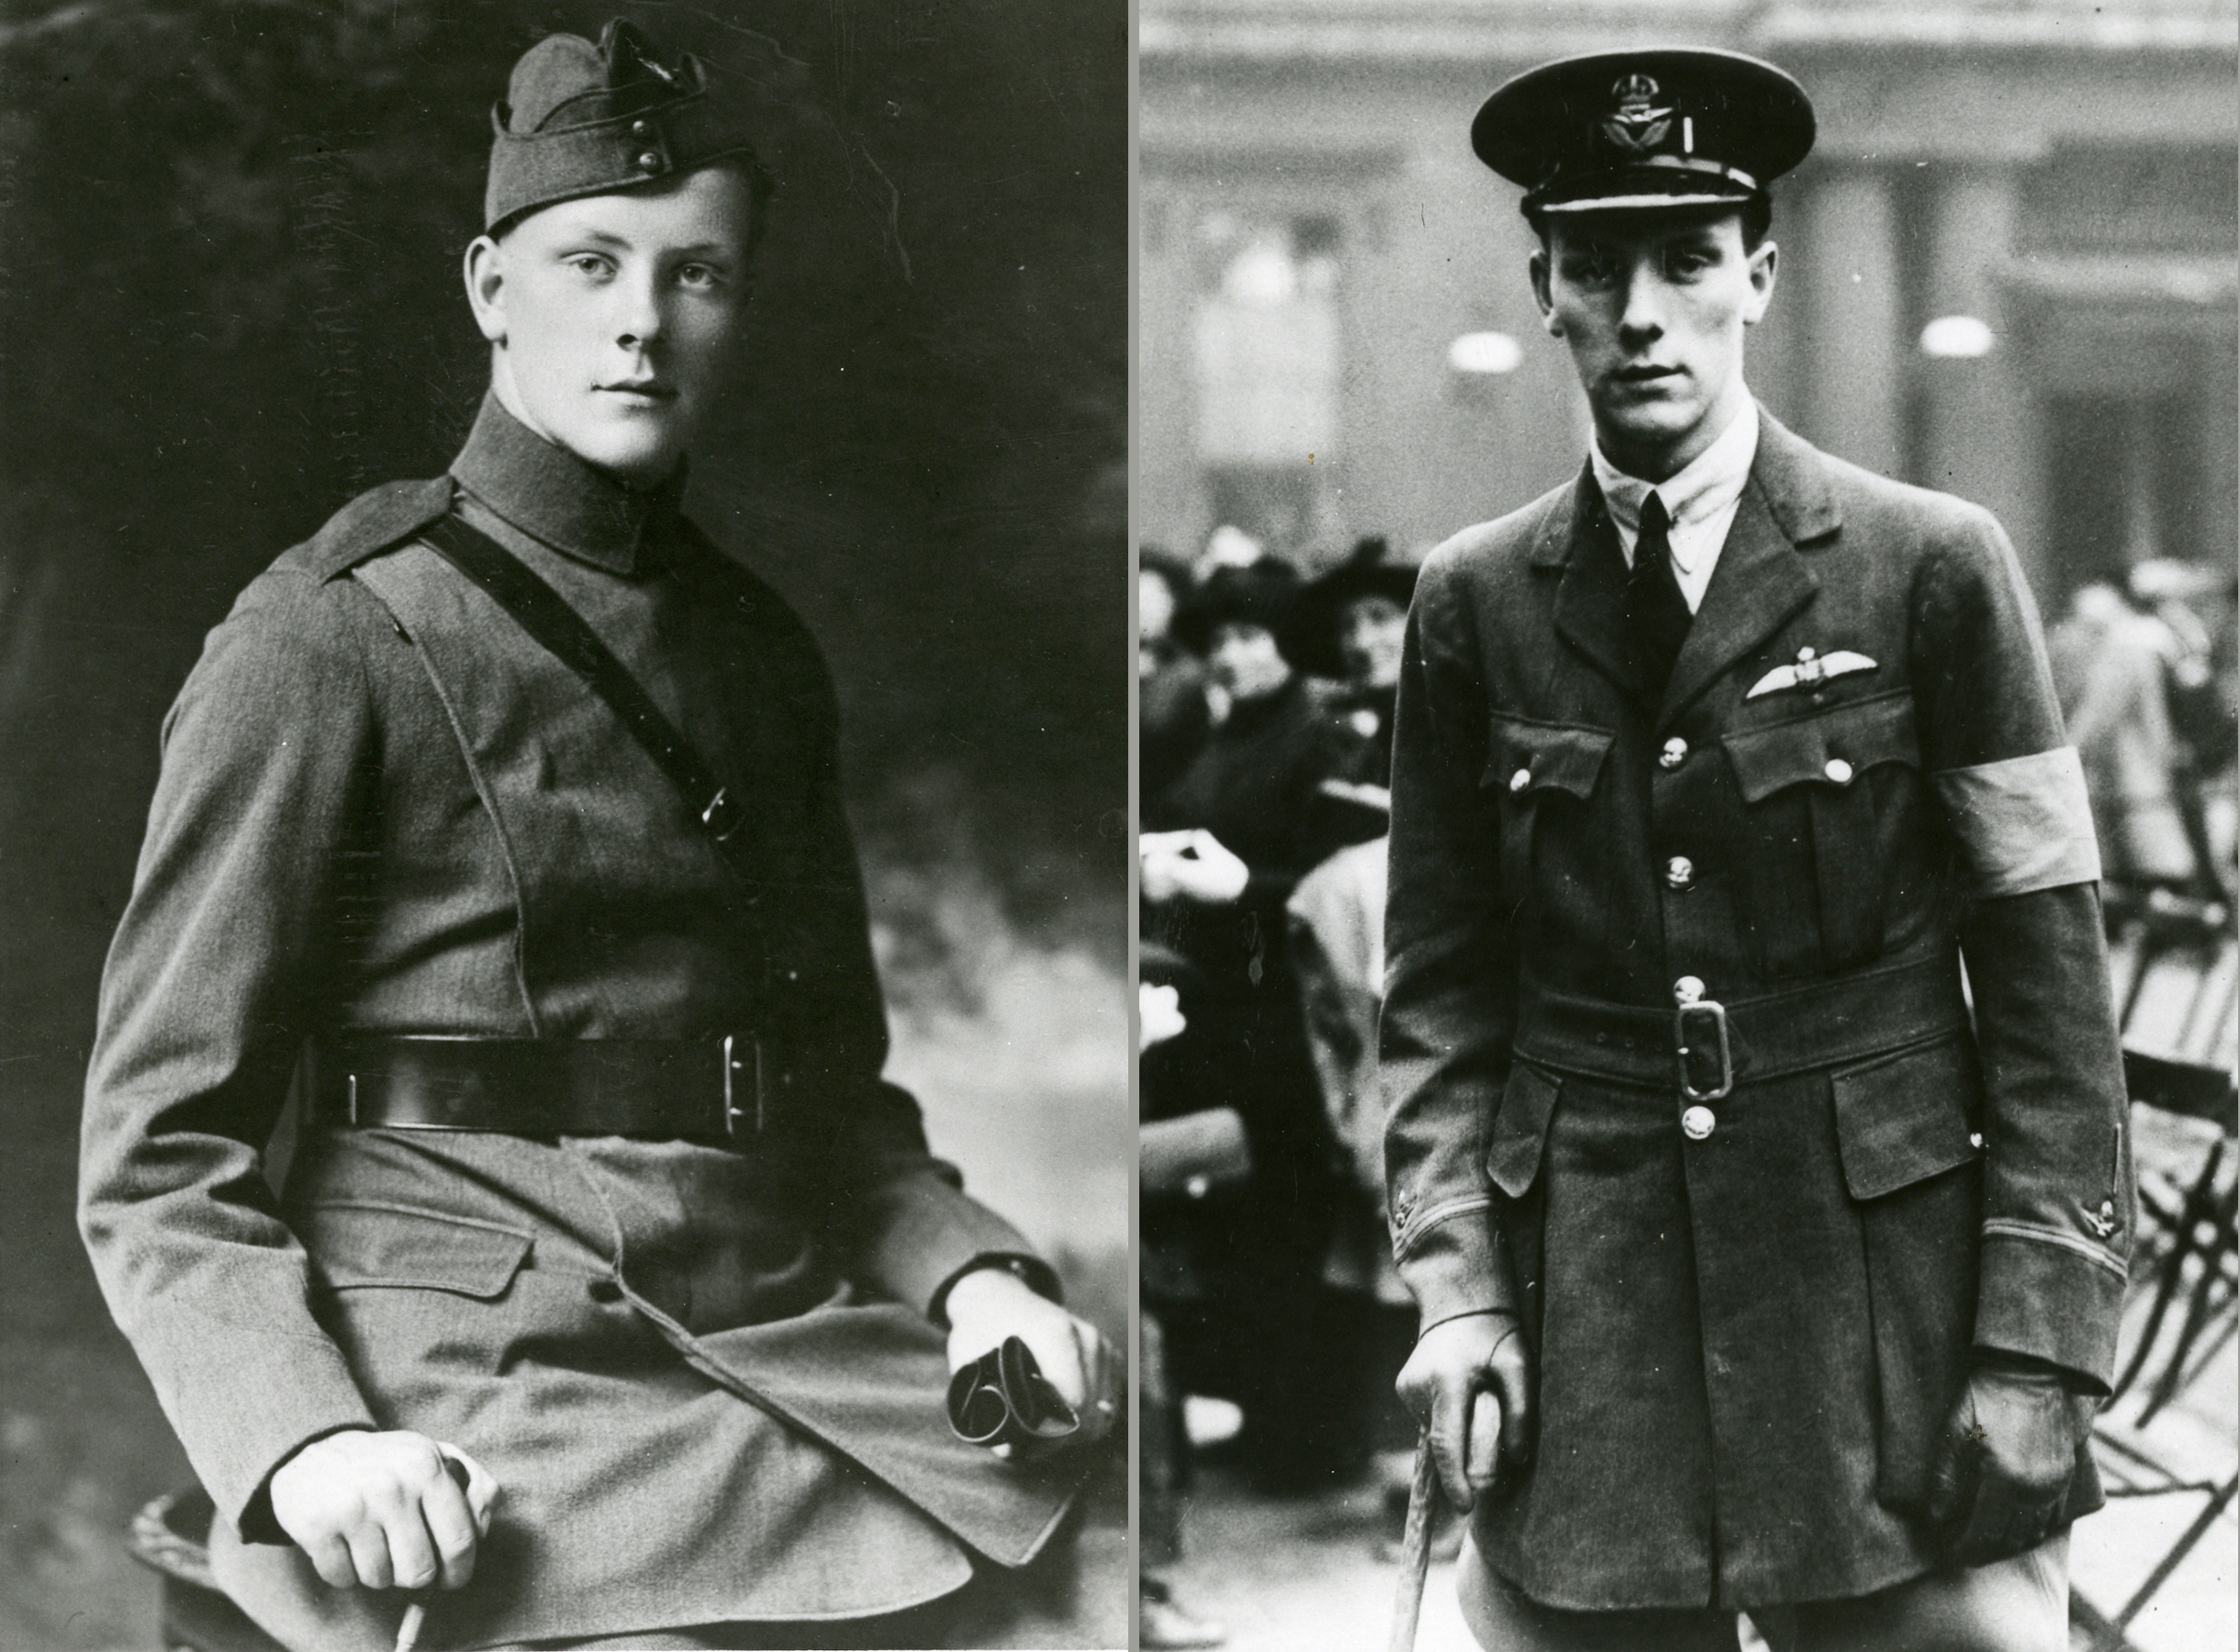 A montage of two black and white, First World War-era photos of the same young man.